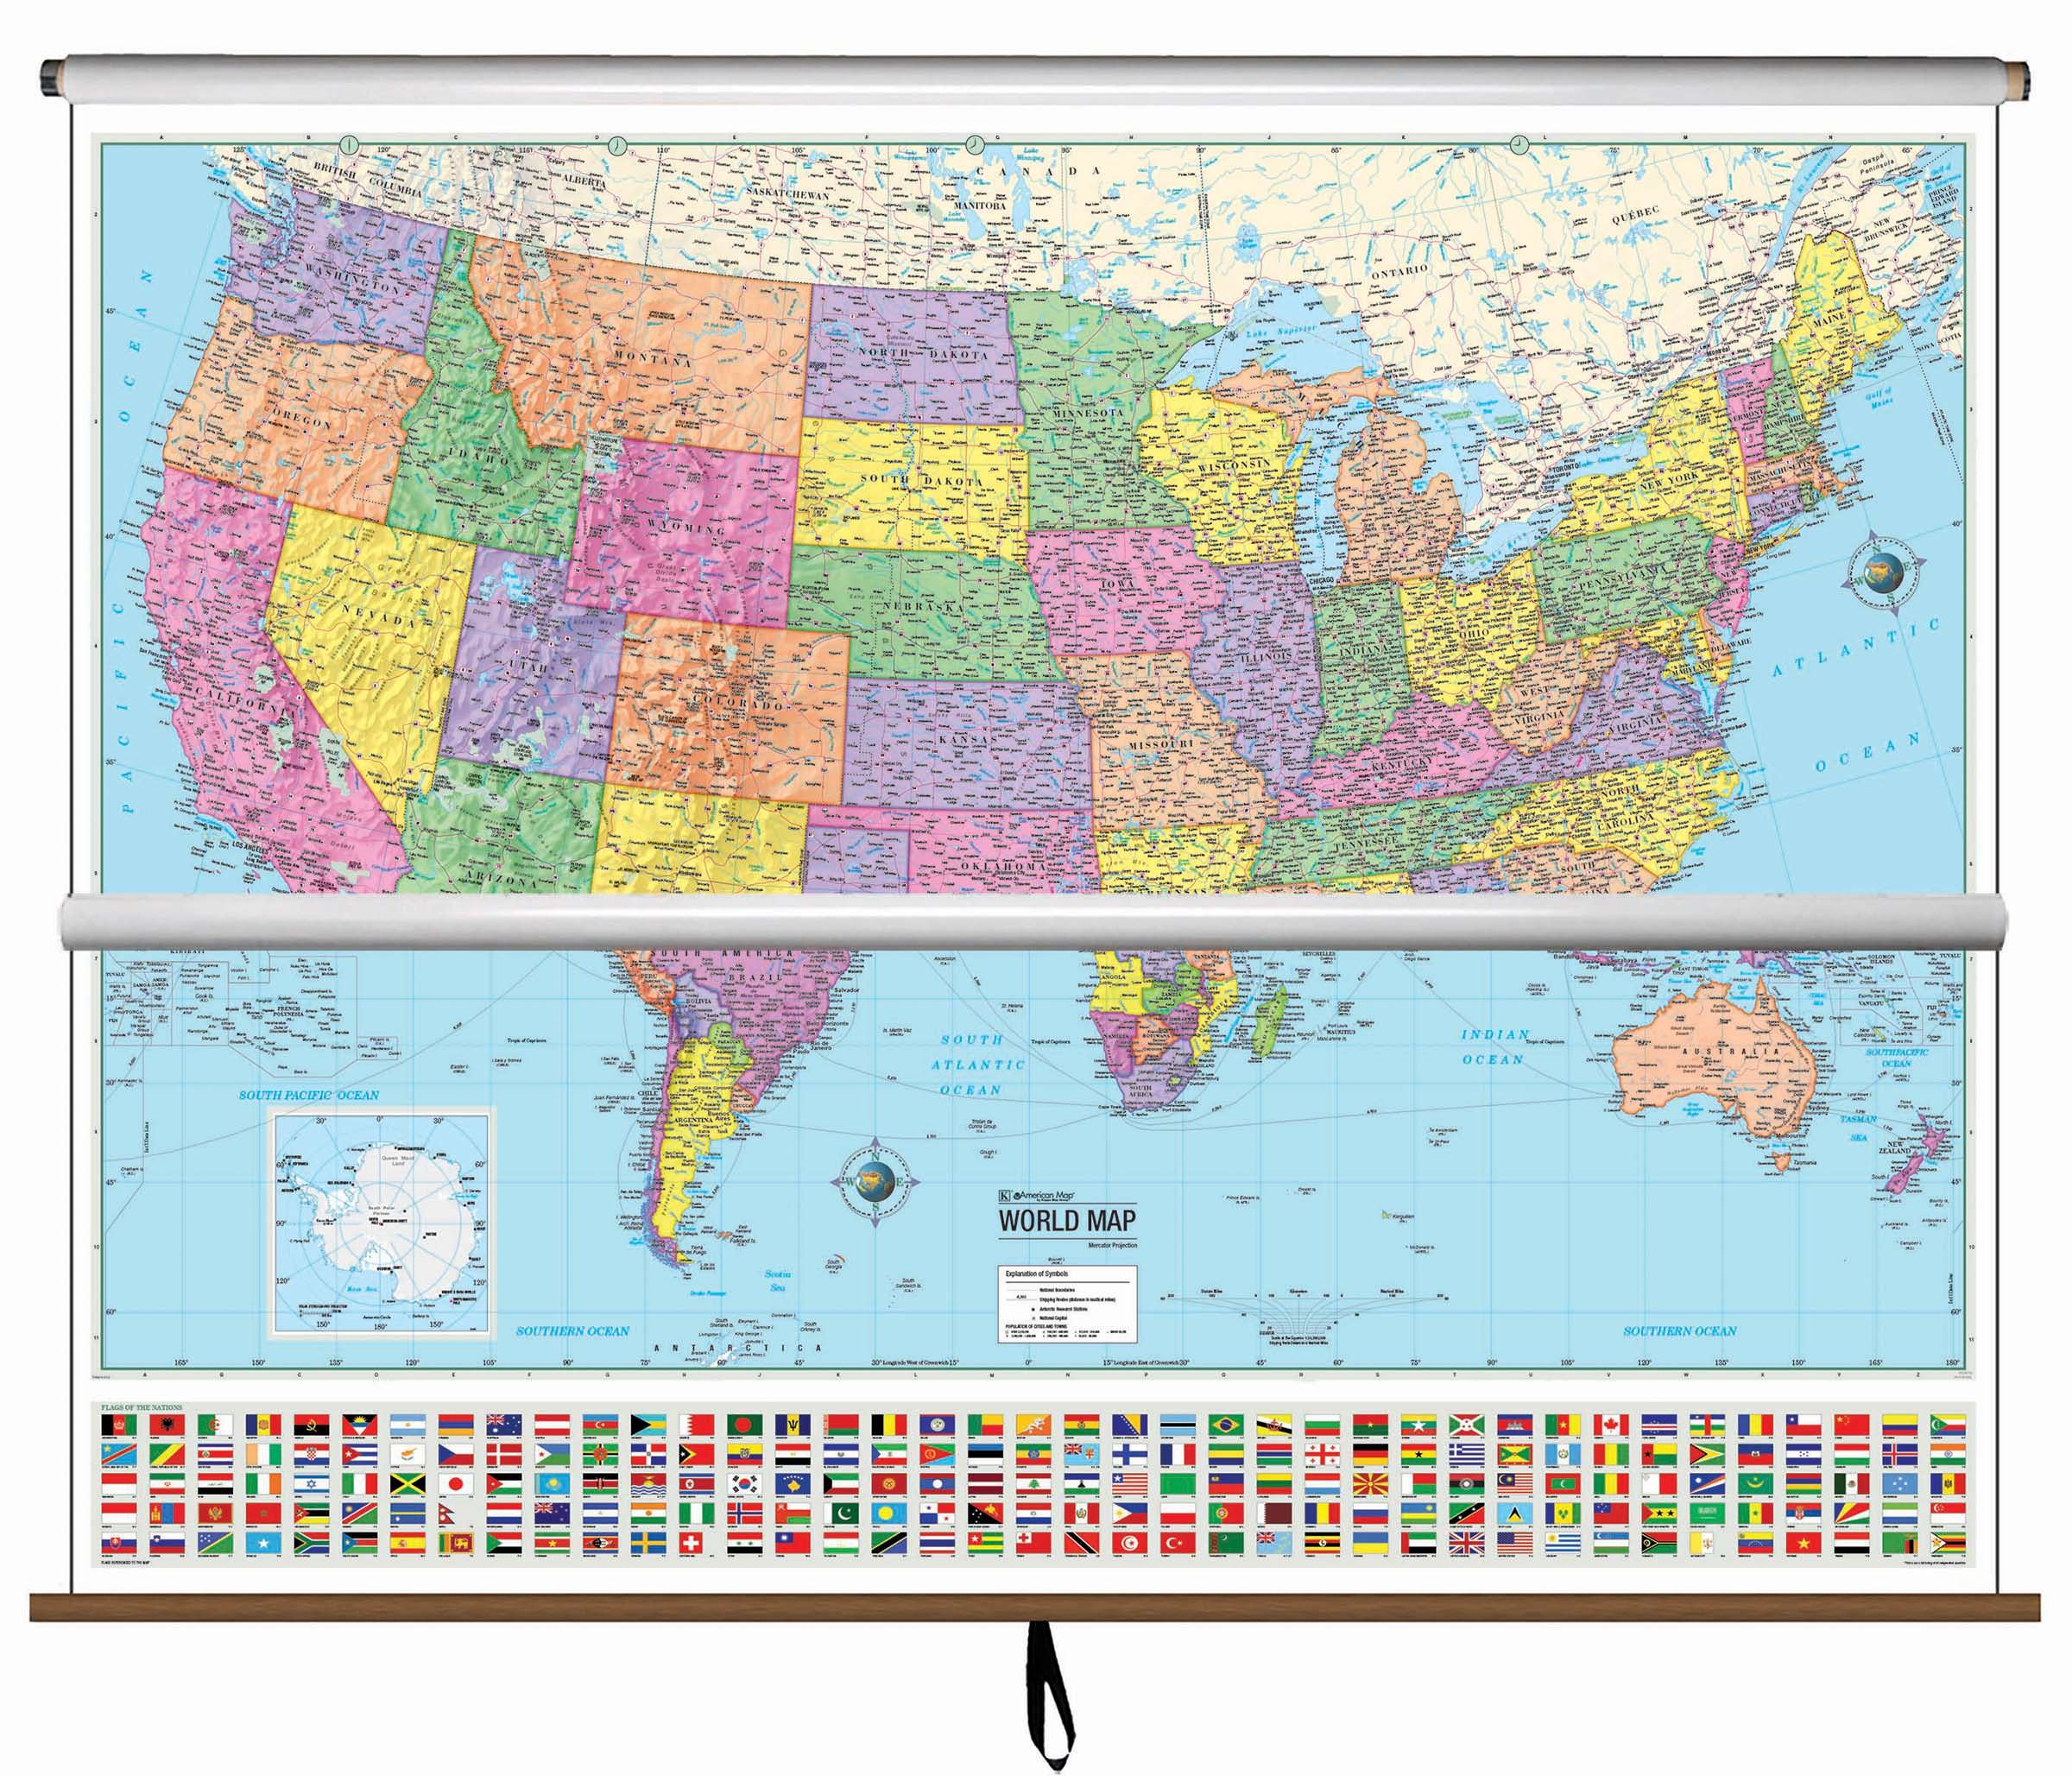 US-World Advanced Political Classroom Combo Wall Map on Roller